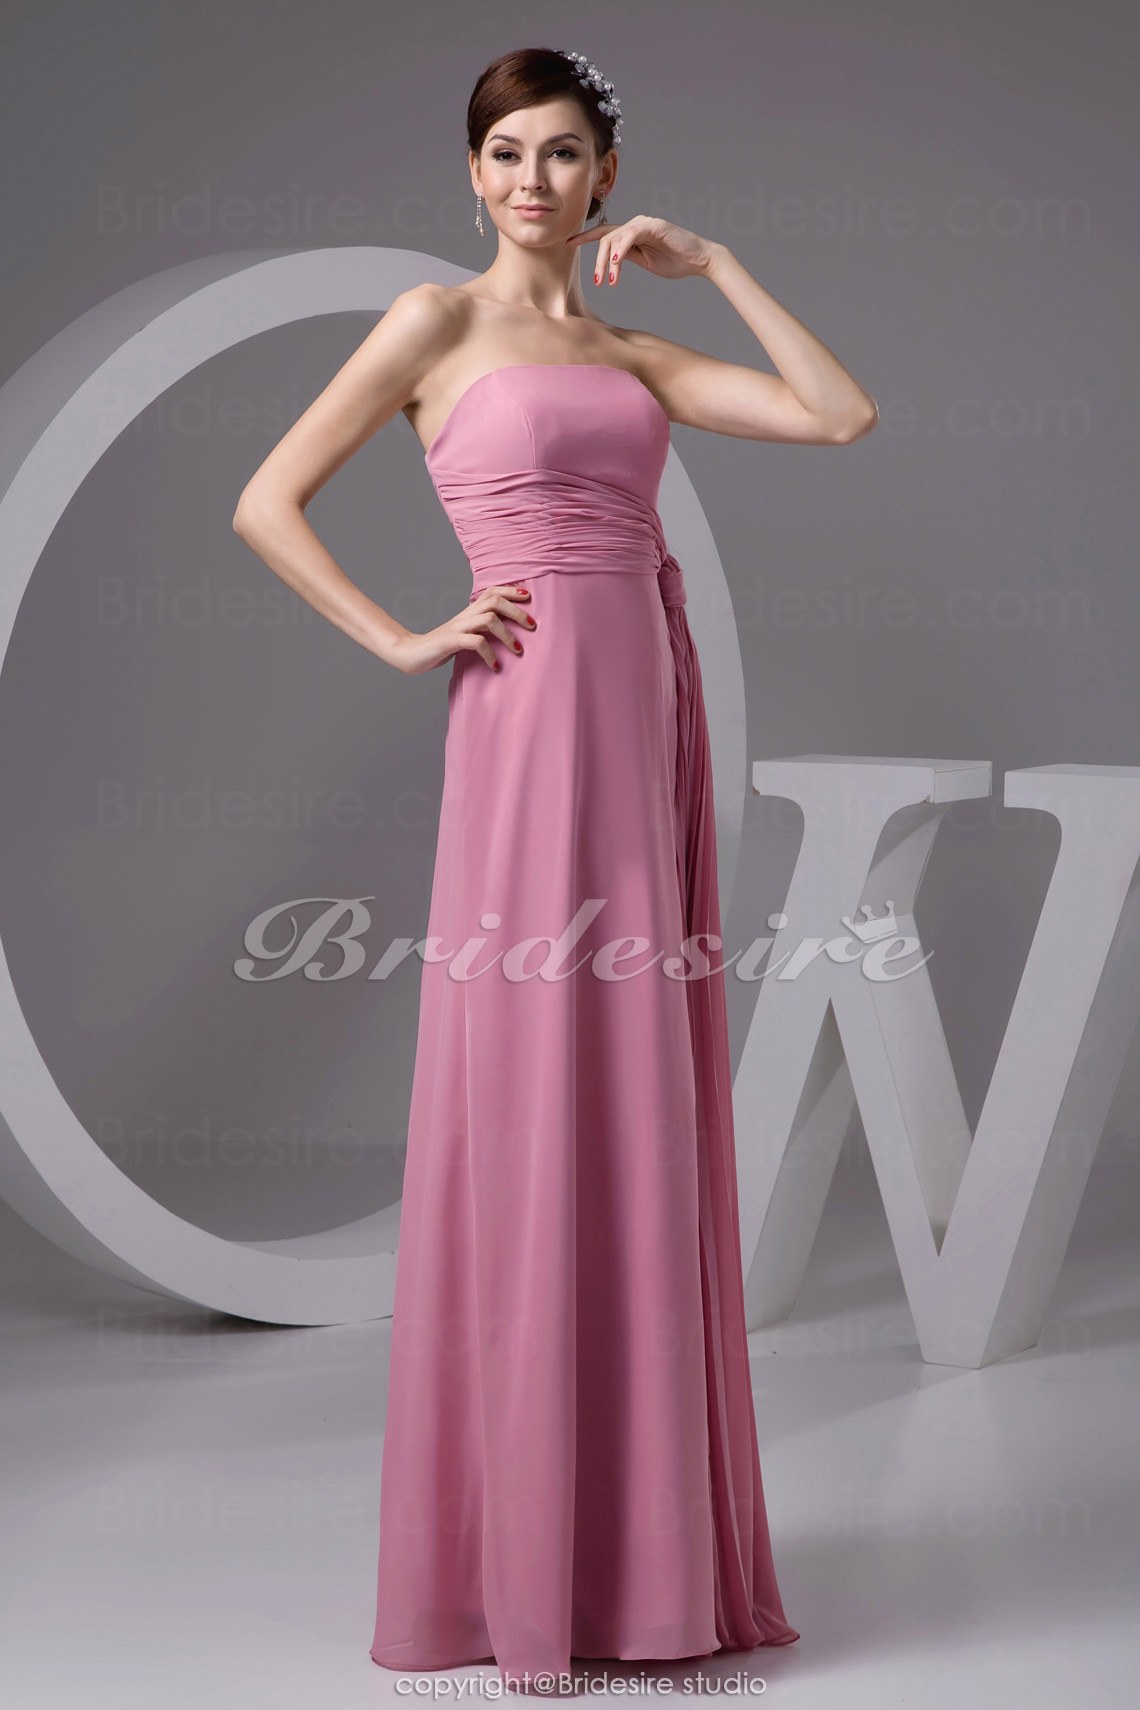 A-line Strapless Floor-length Sleeveless Chiffon Bridesmaid Dress